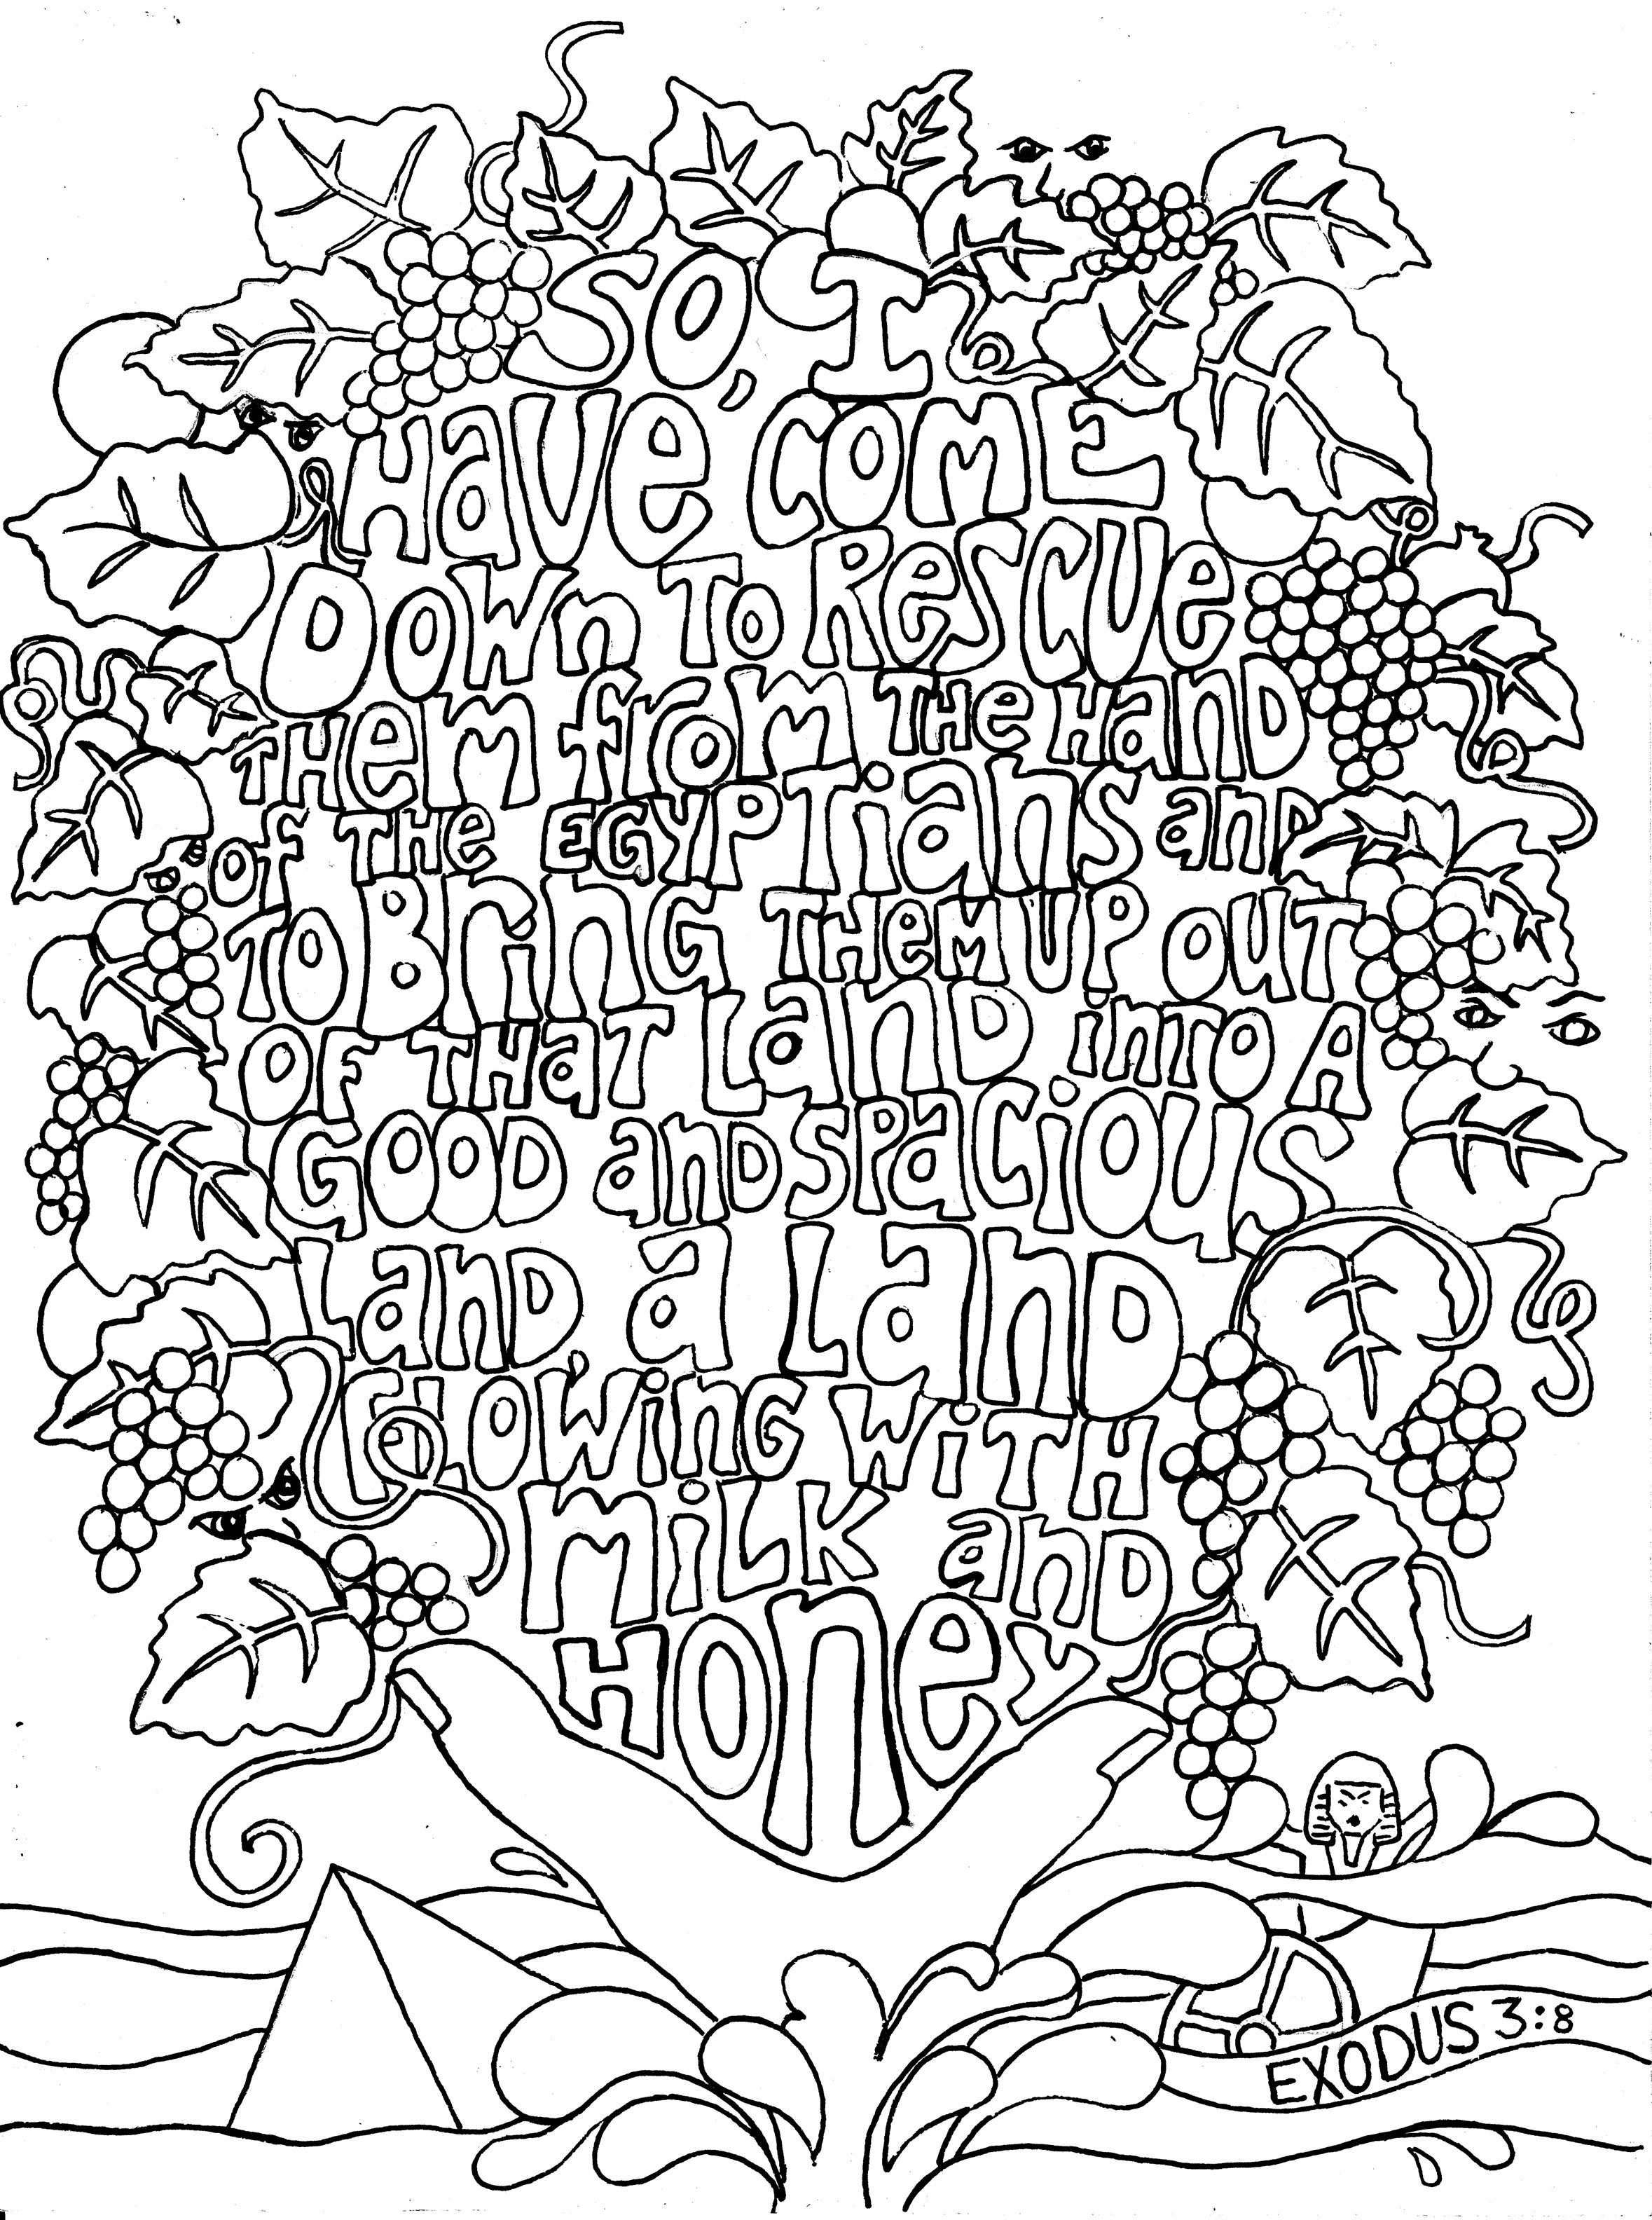 Free coloring pages nehemiah rebuilding wall - Exodus 3 8 Adult Colouring In Sheets Of Bible Verses Link Is Courtesy Of A Google